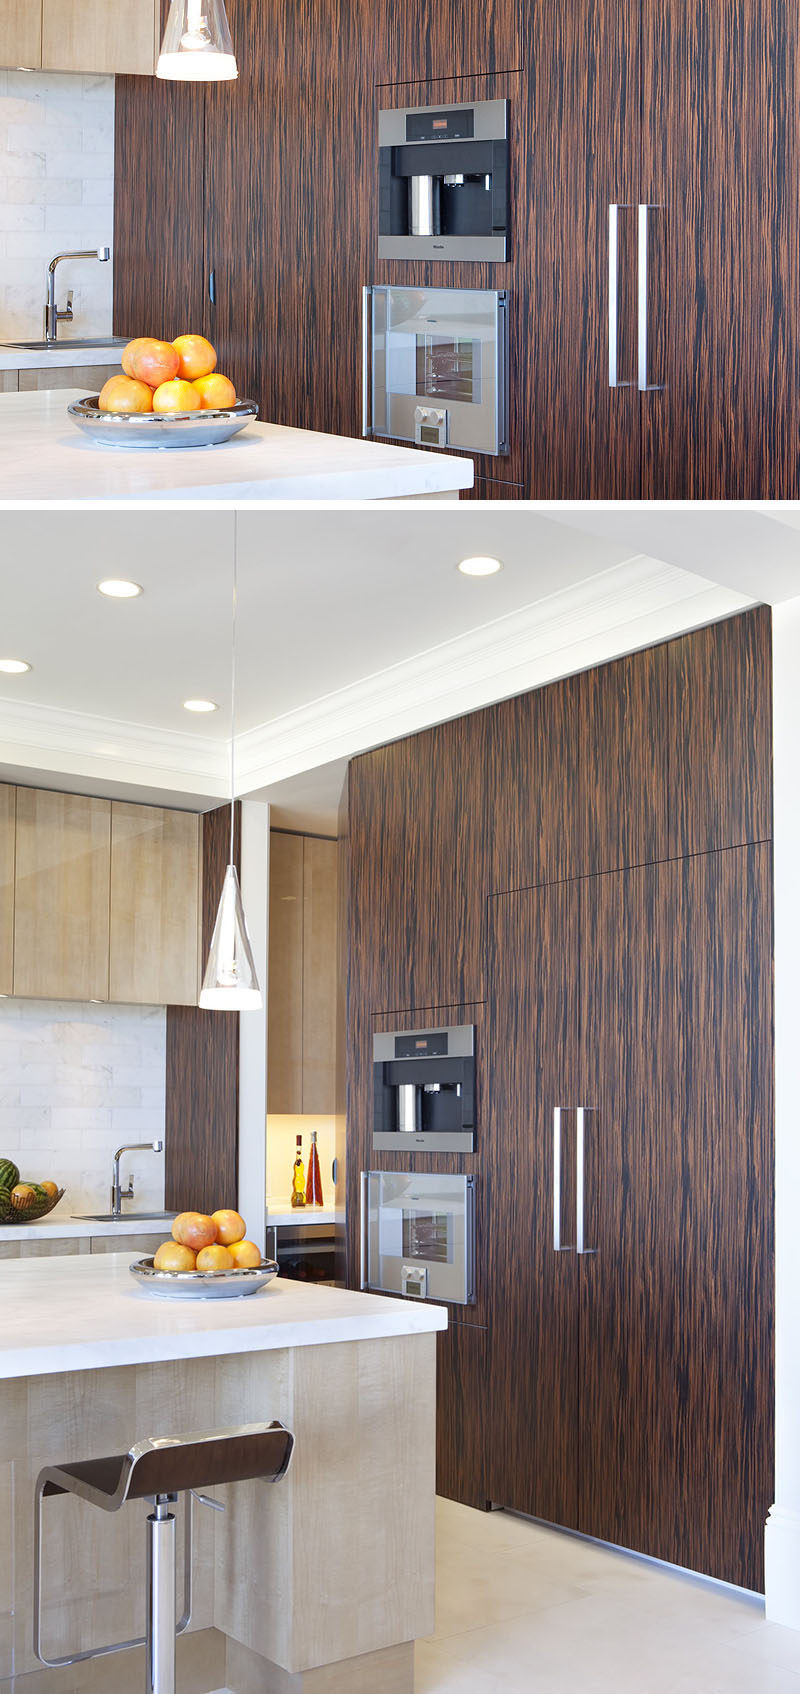 9 Examples Of Kitchens With Built-In Coffee Machines // Surrounded by wood paneling, this built-in coffee machine looks clean and contemporary.